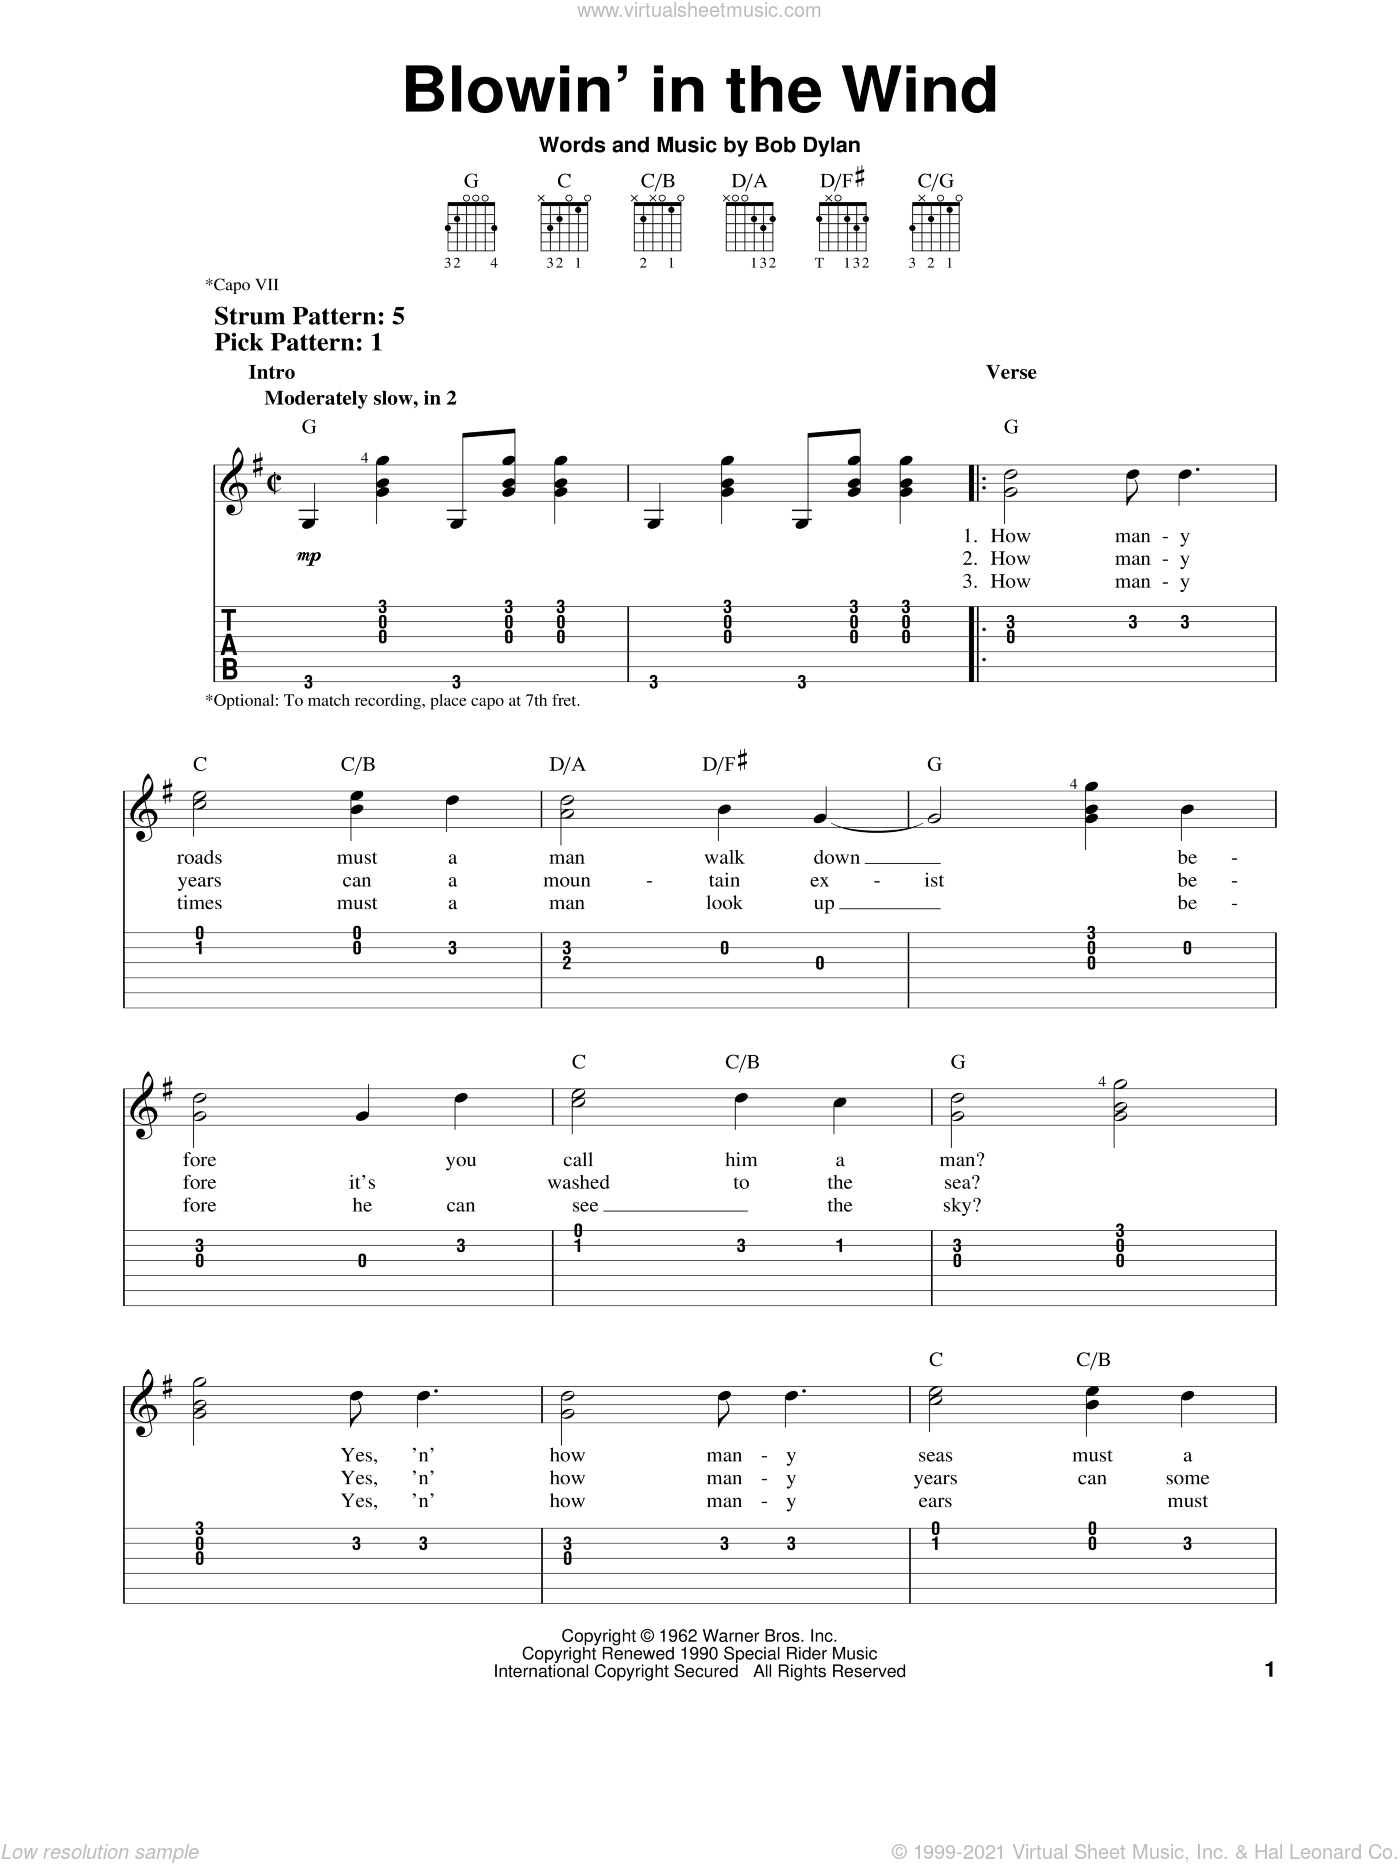 Blowin' In The Wind sheet music for guitar solo (easy tablature) by Bob Dylan, Peter, Paul & Mary and Stevie Wonder, easy guitar (easy tablature). Score Image Preview.